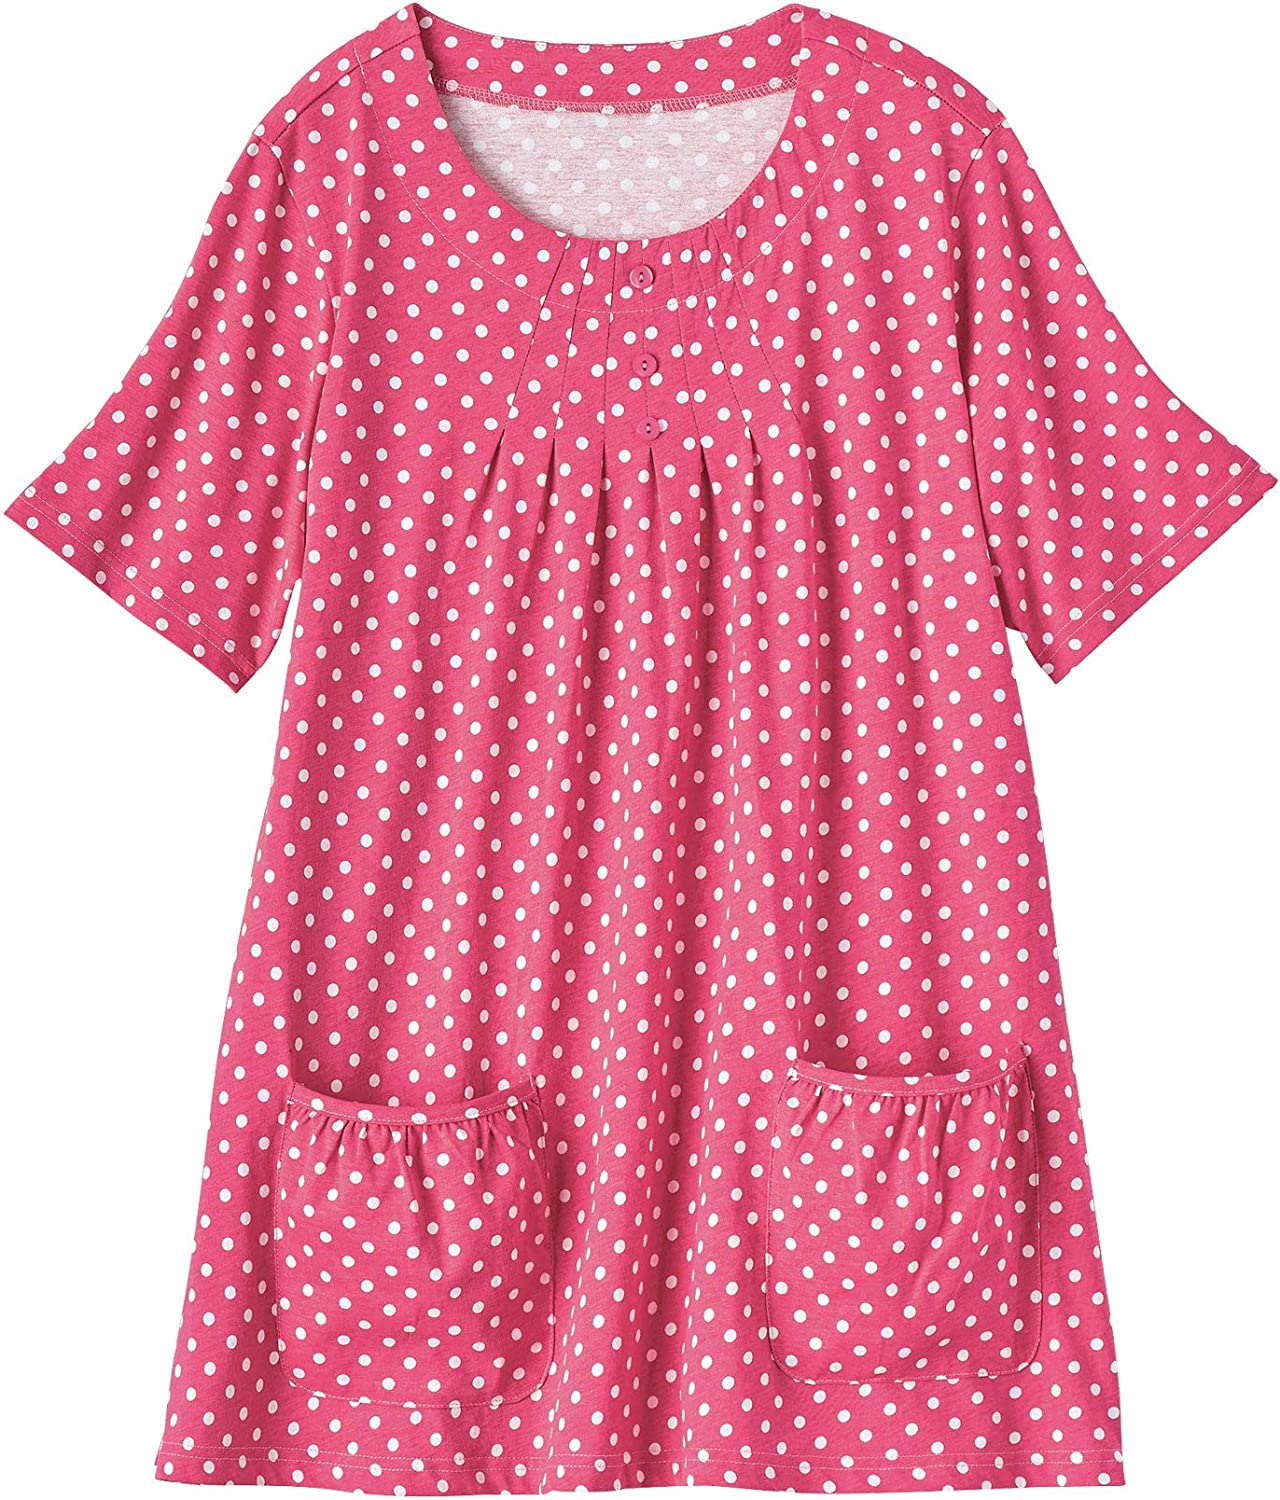 AmeriMark Women's Comfy Knit Tunic with Scoop Neck, Button Accents & Pleats